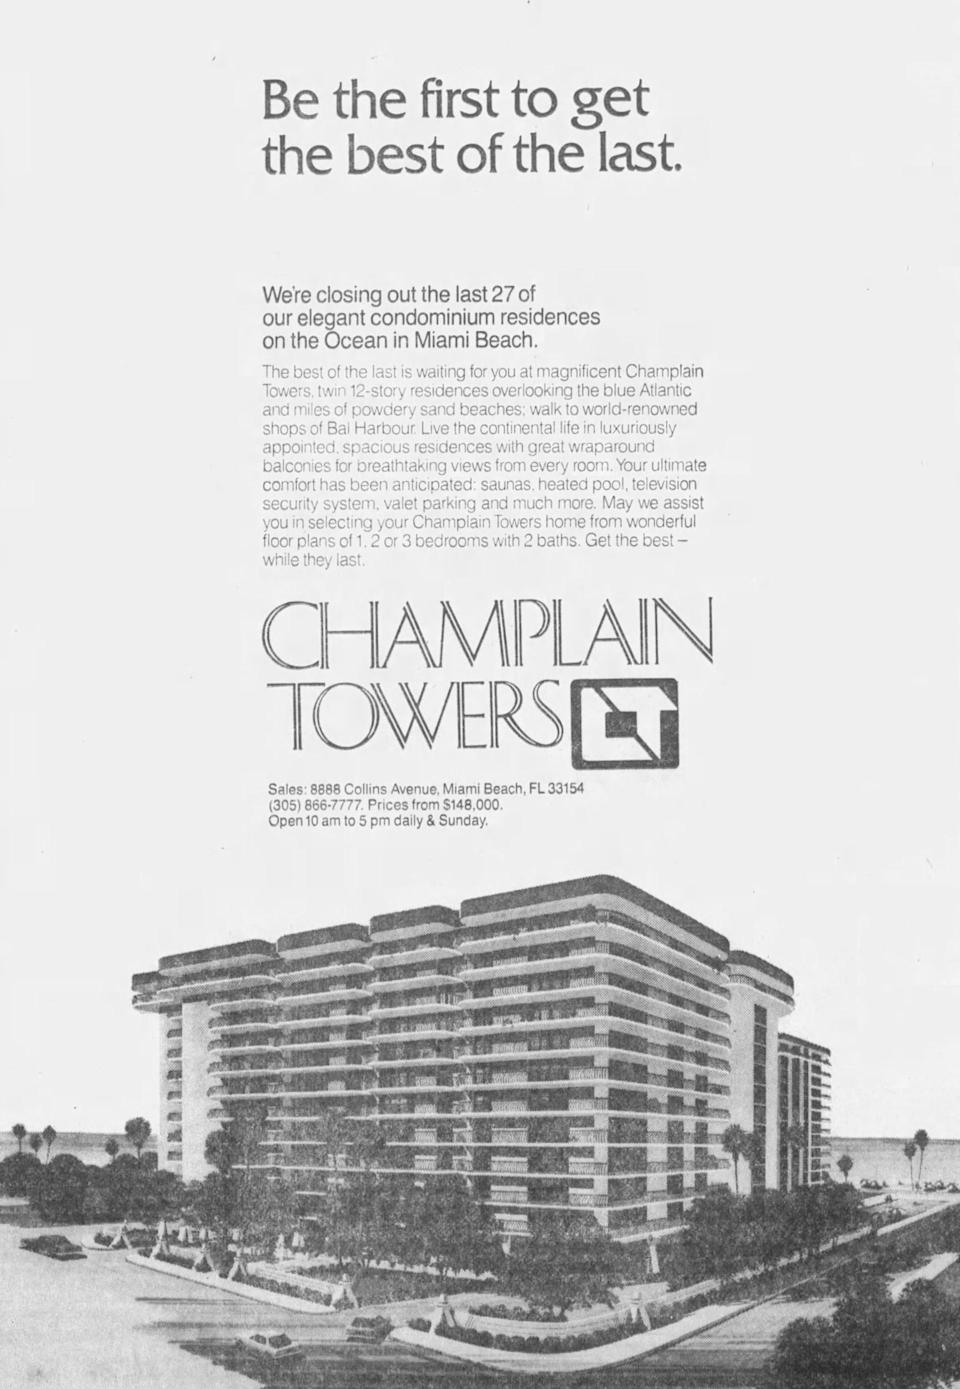 An advertisement for Champlain Towers appeared in the Miami Herald on July 20, 1980.